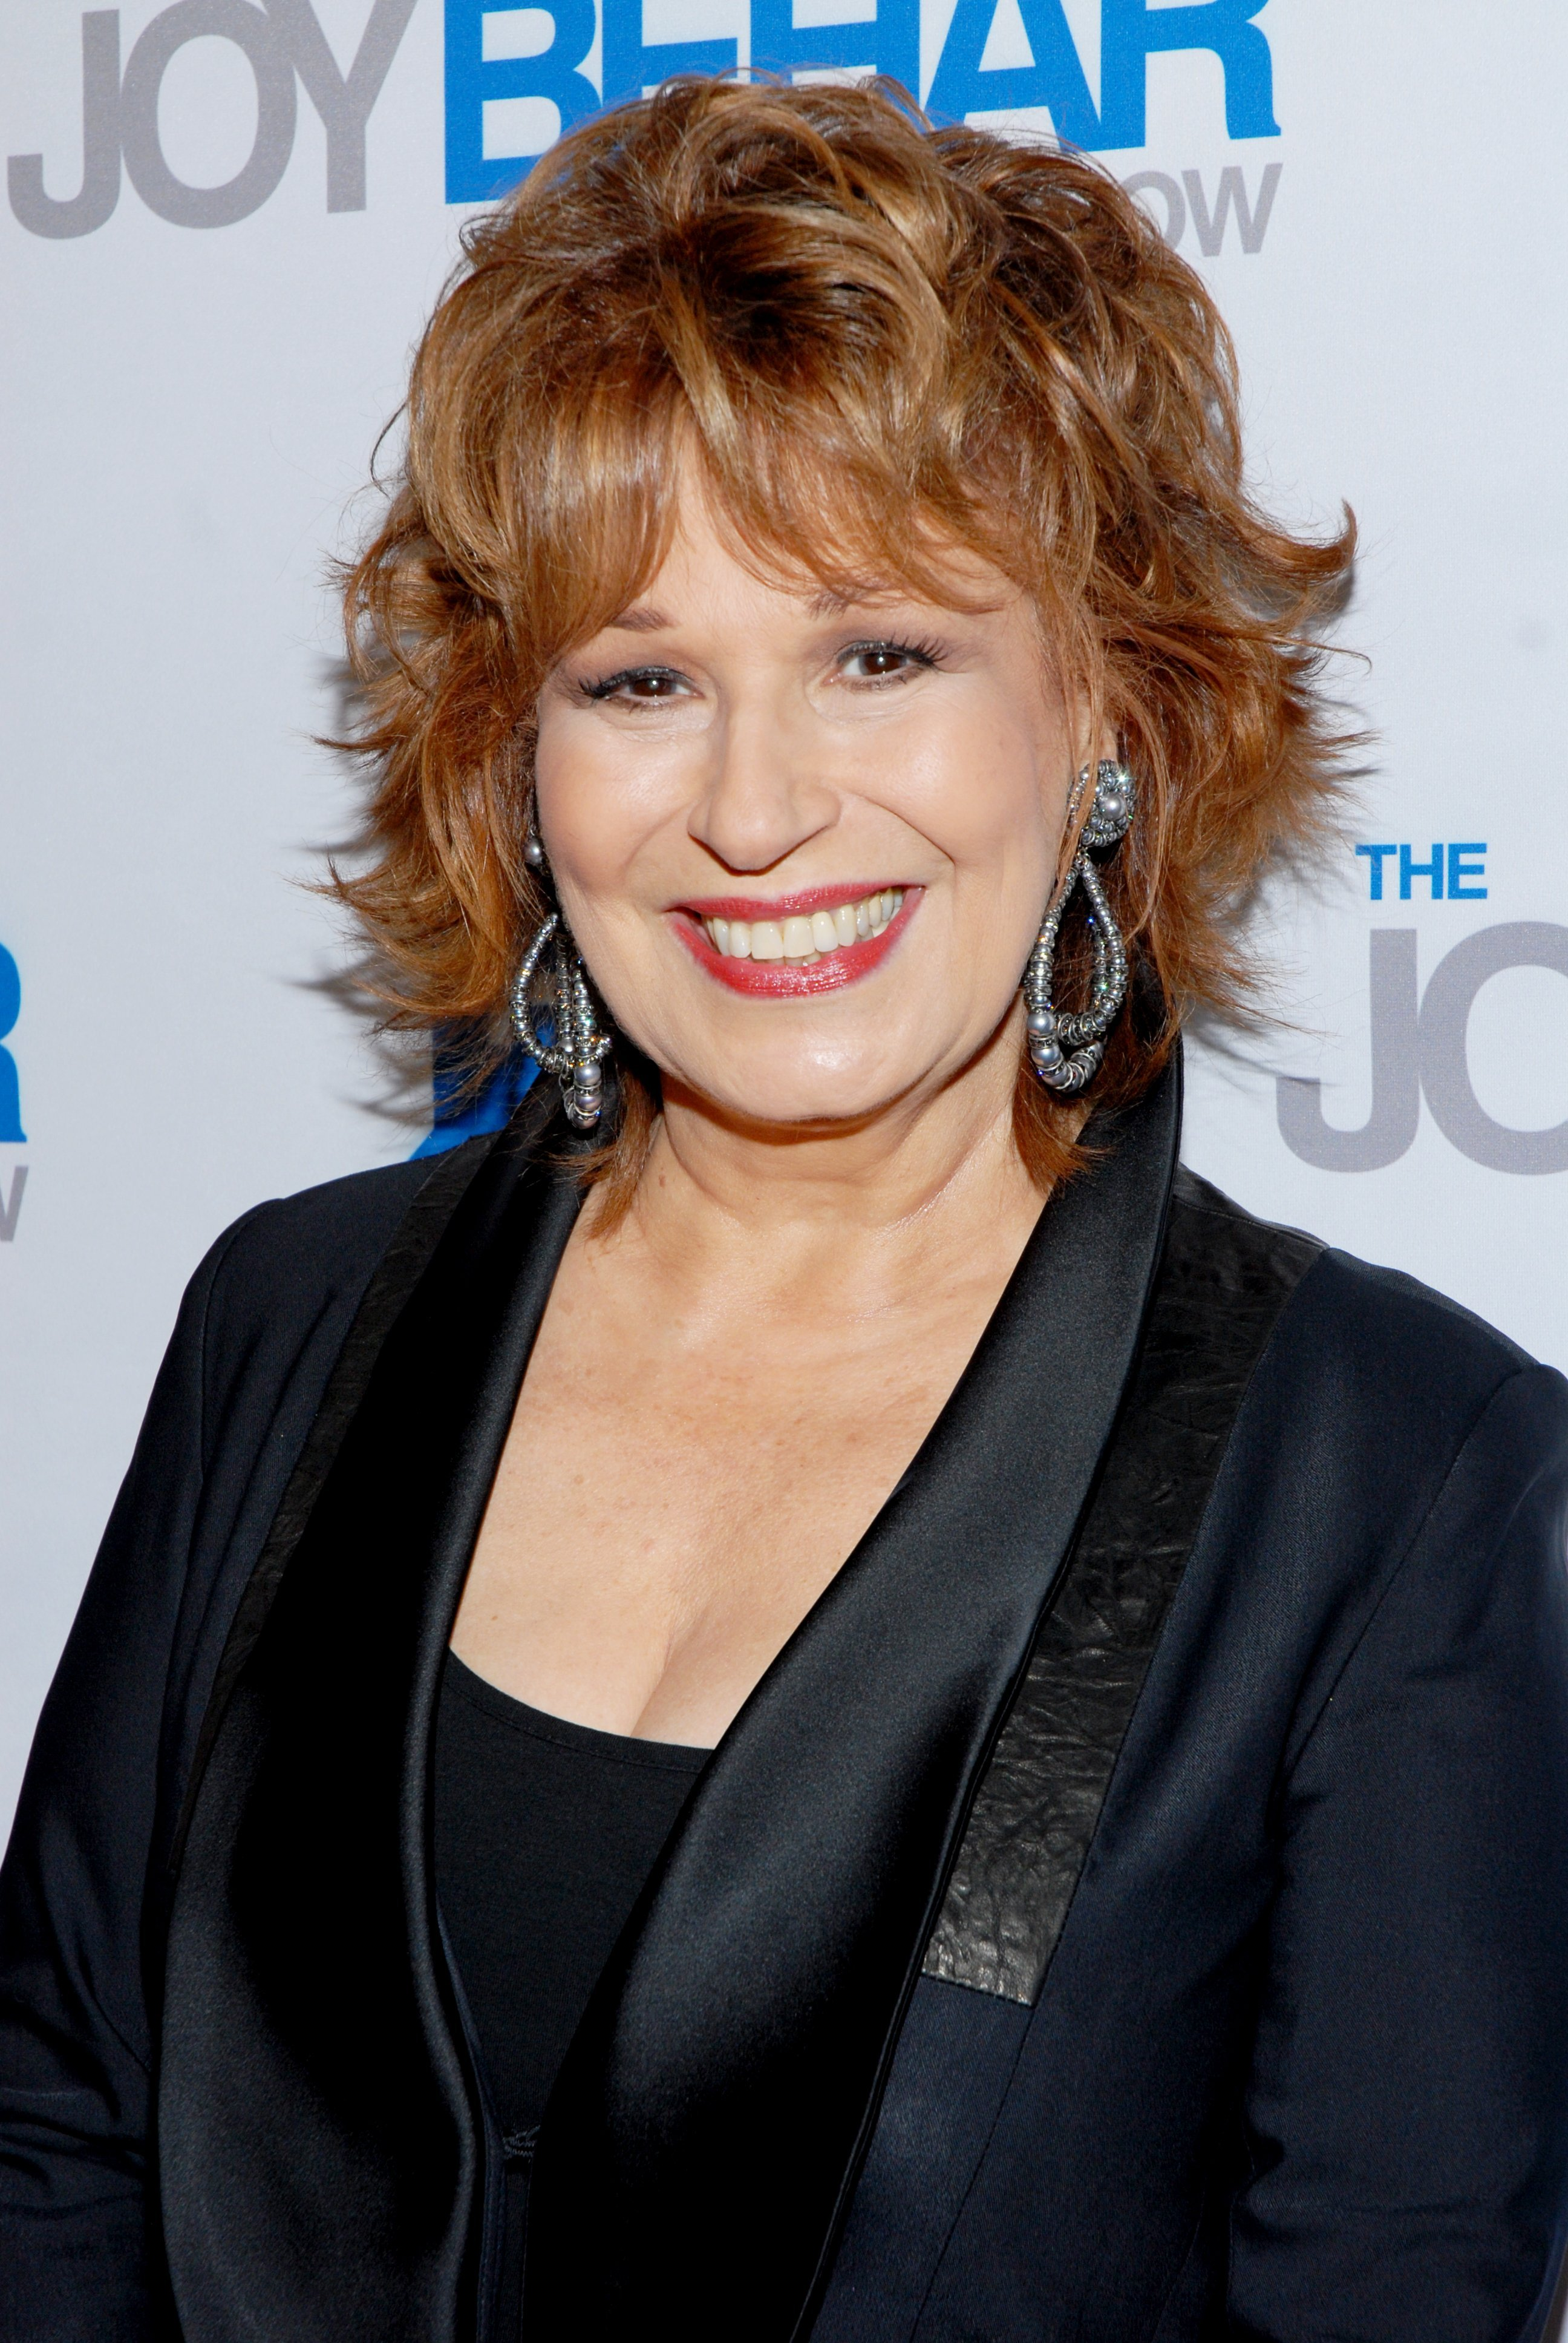 """Joy Behar attends """"The Joy Behar Show"""" launch party in New York City on September 23, 2009 